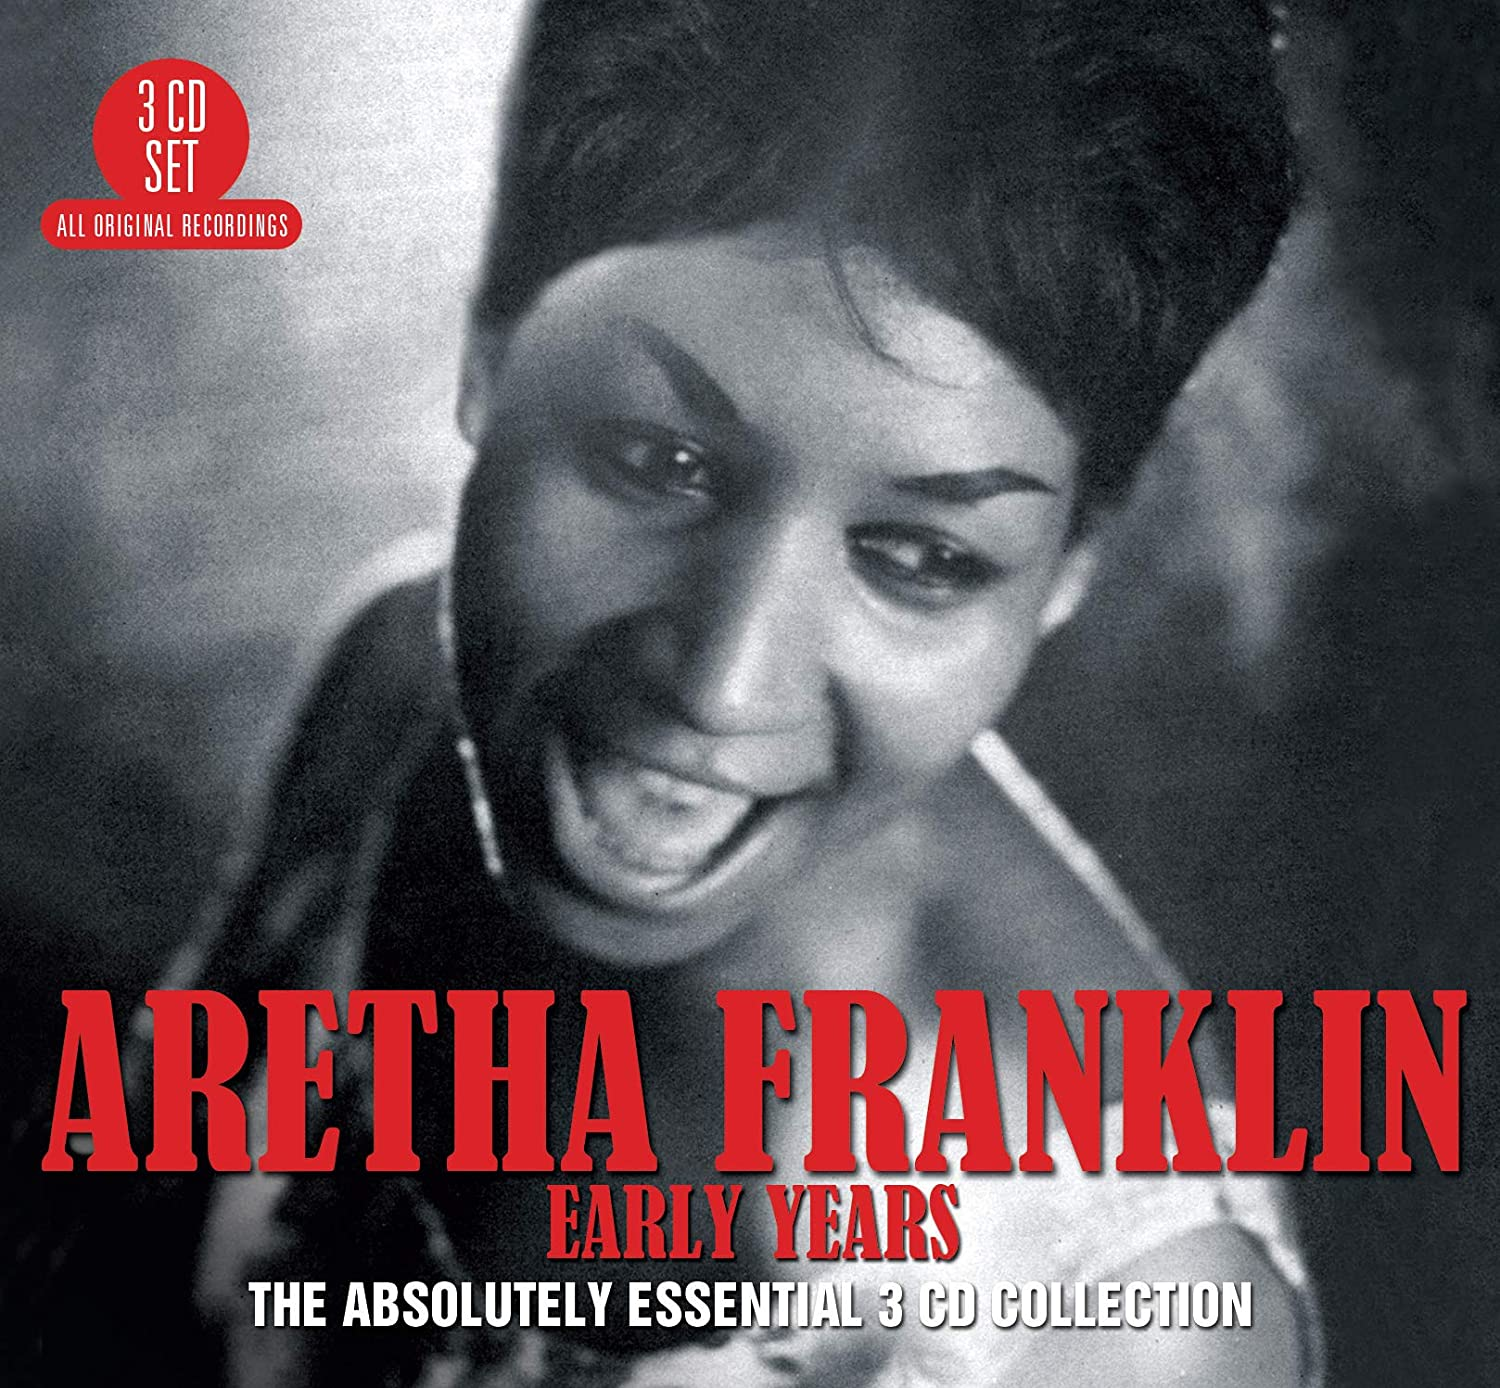 Aretha Franklin - CD Early Years: The Absolutely Essential